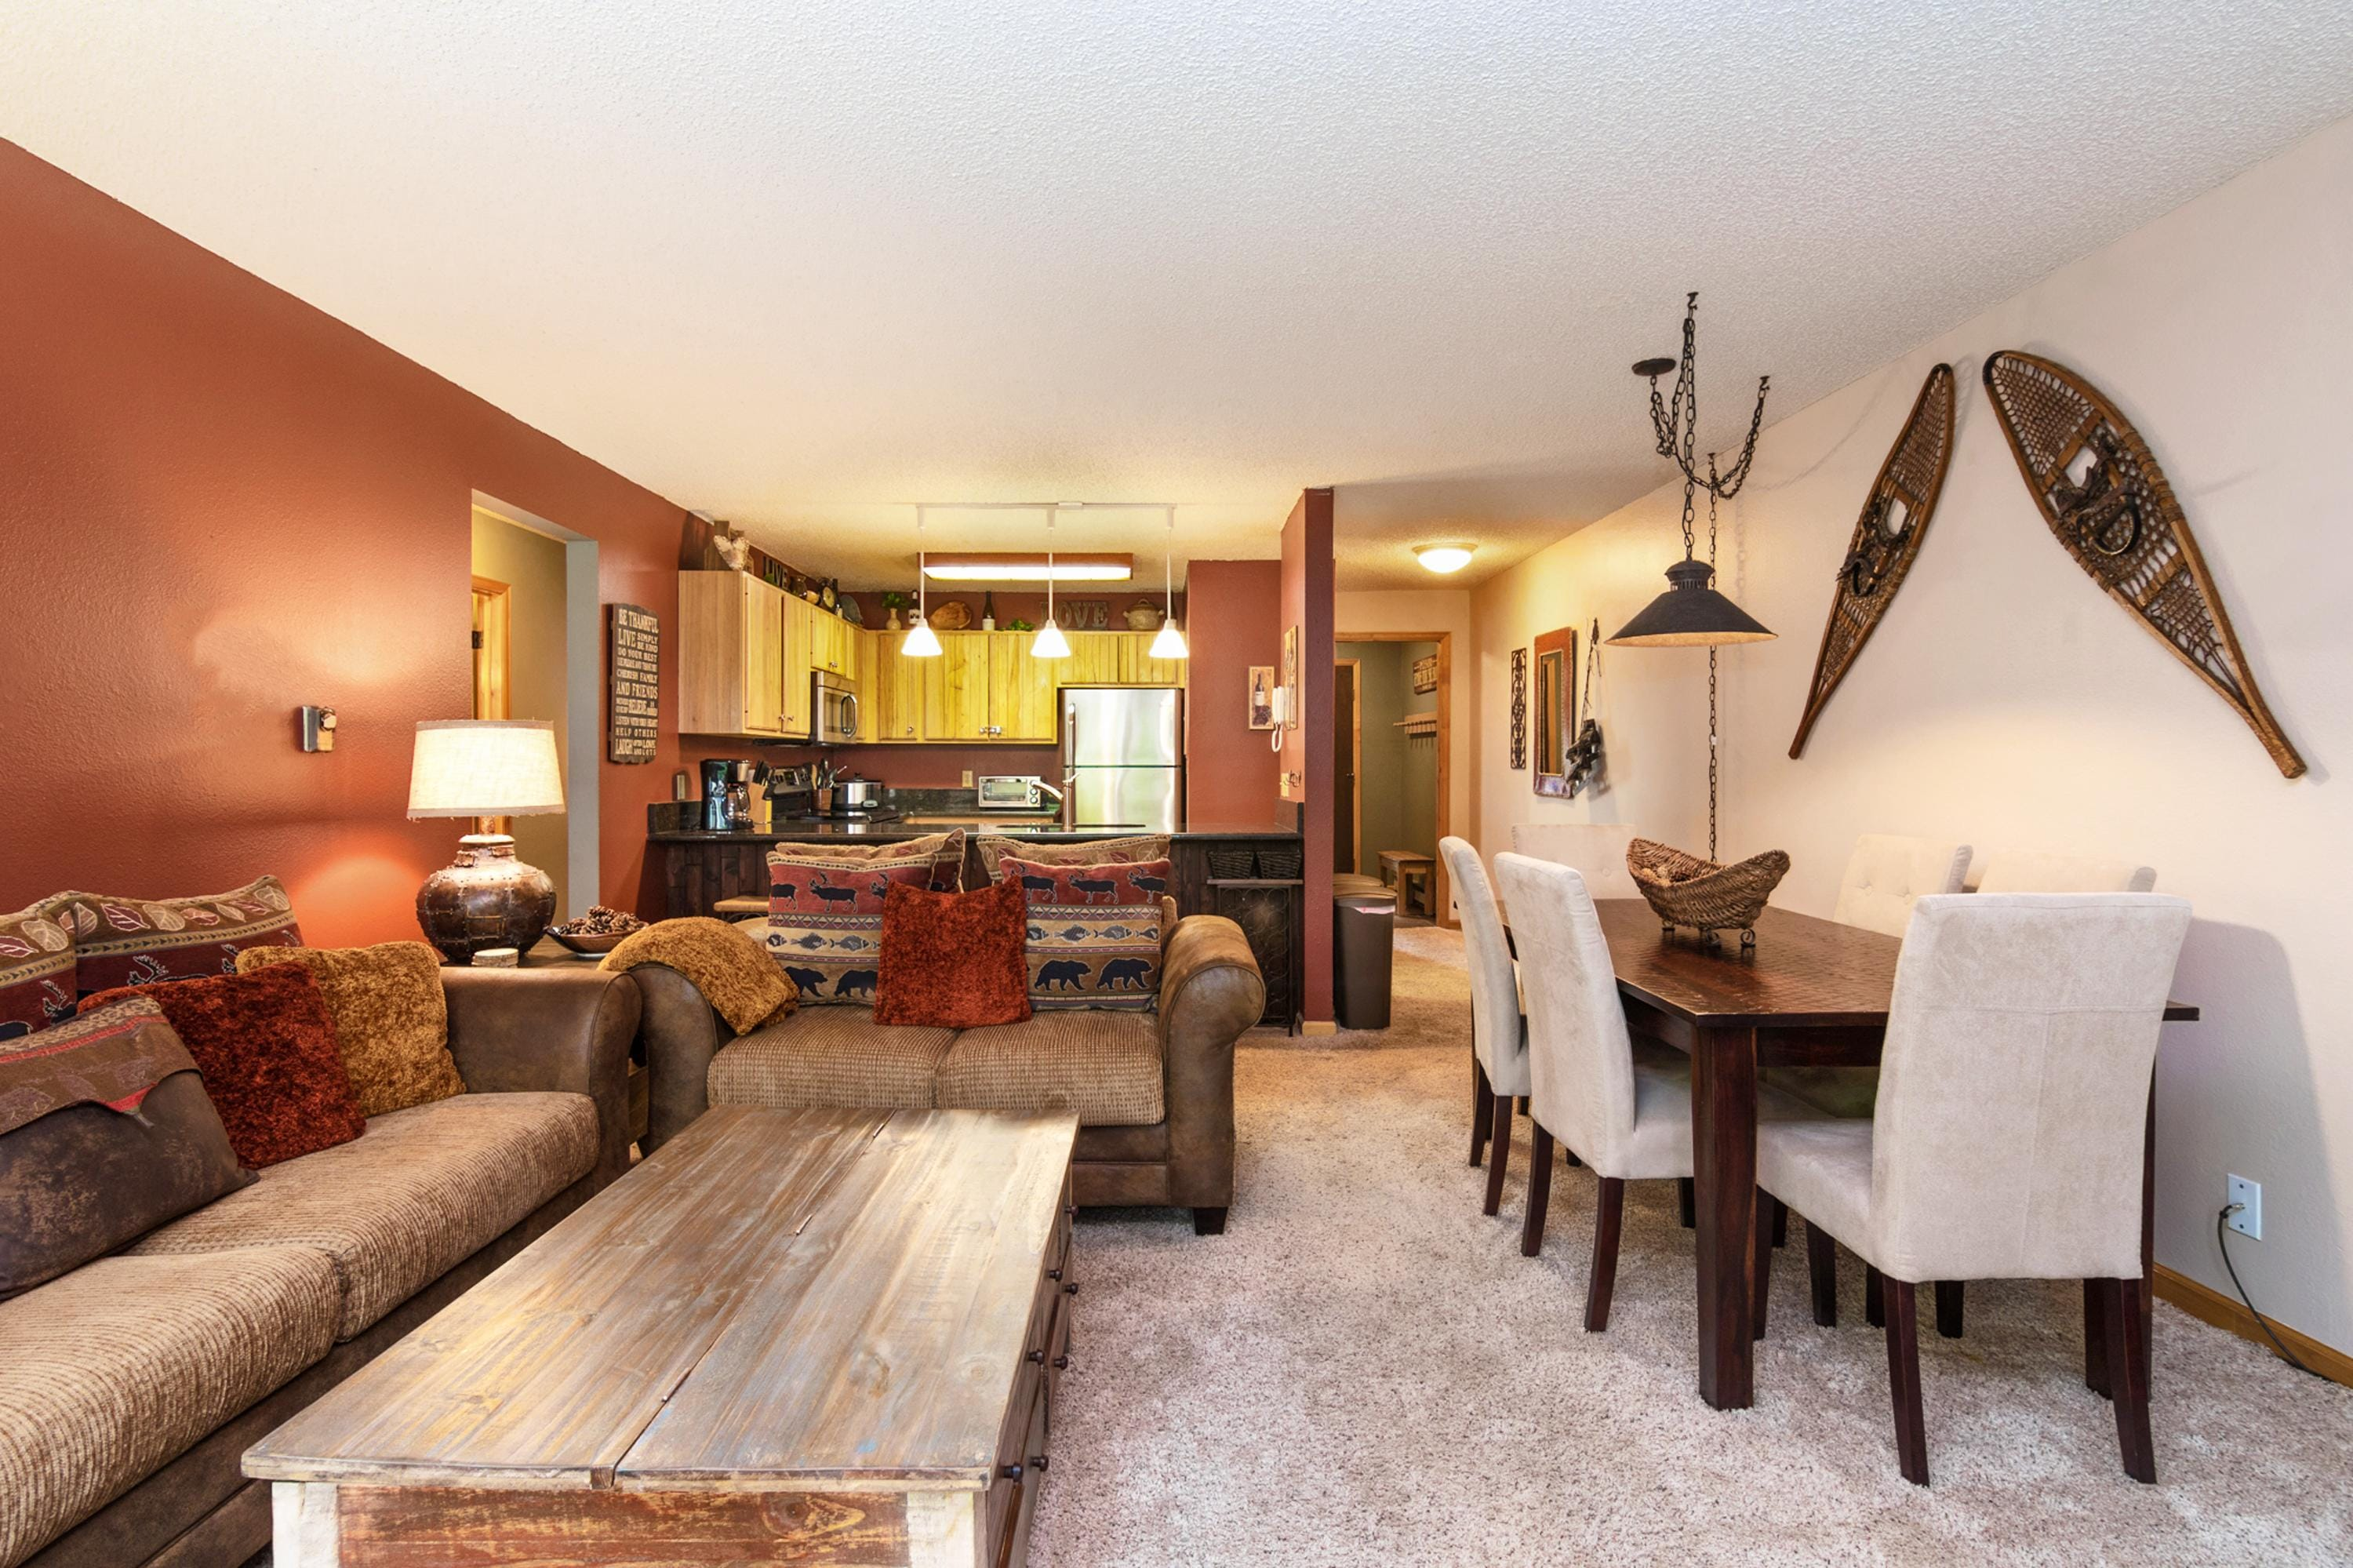 Welcome to Avon! This condo is professionally managed by TurnKey Vacation Rentals.